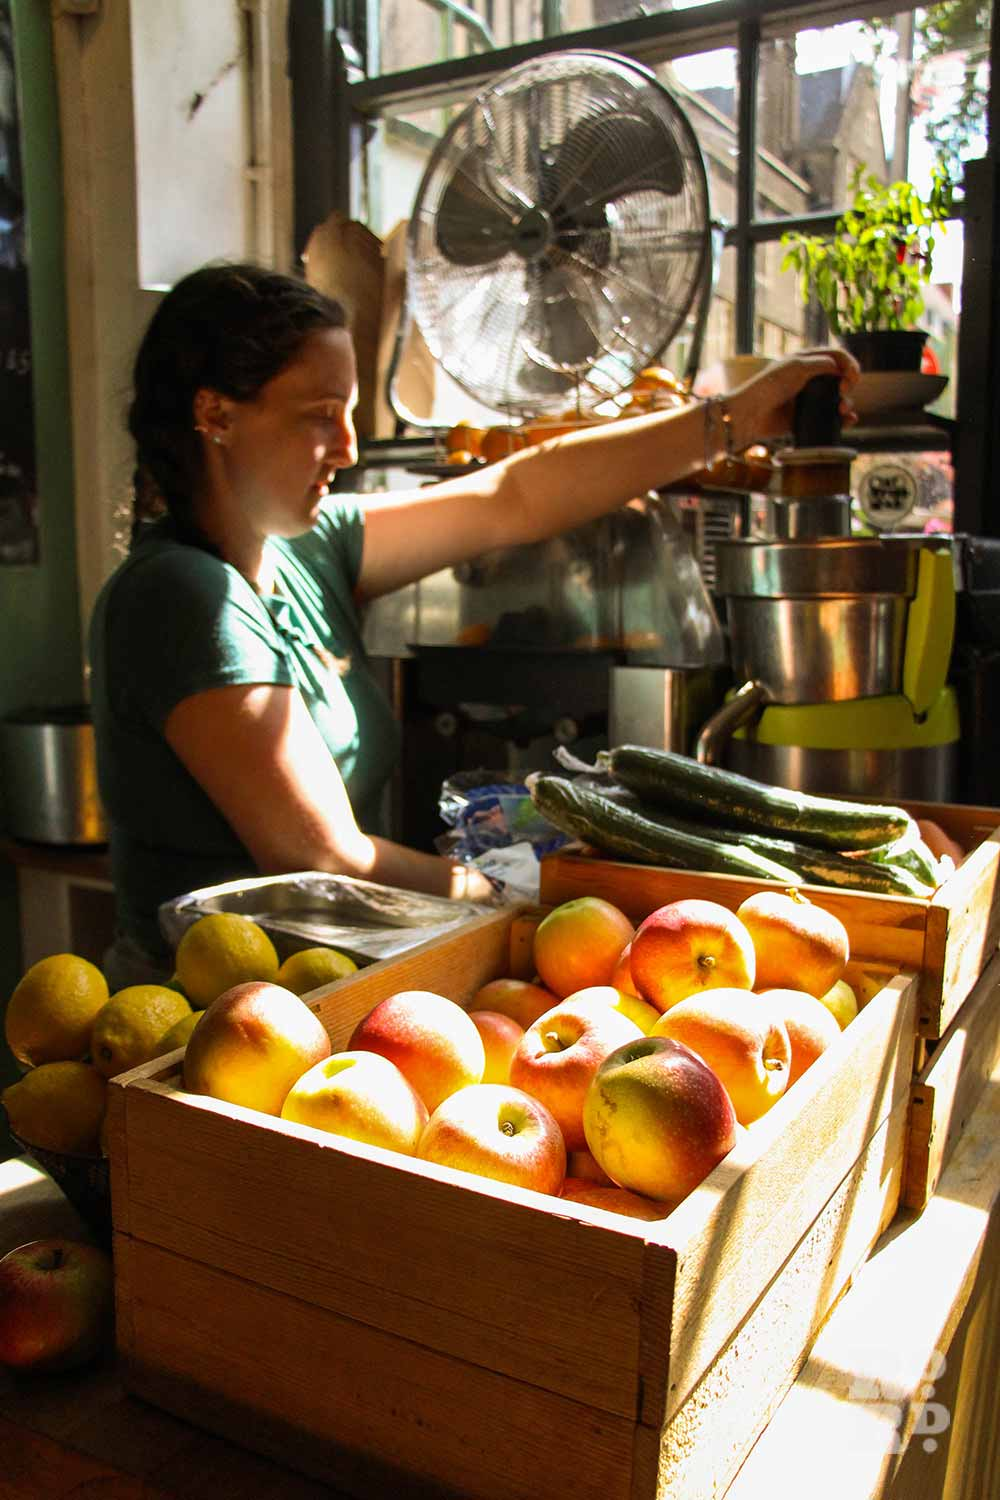 Gallery Cafe staff using juicer with apples and lemons in crates